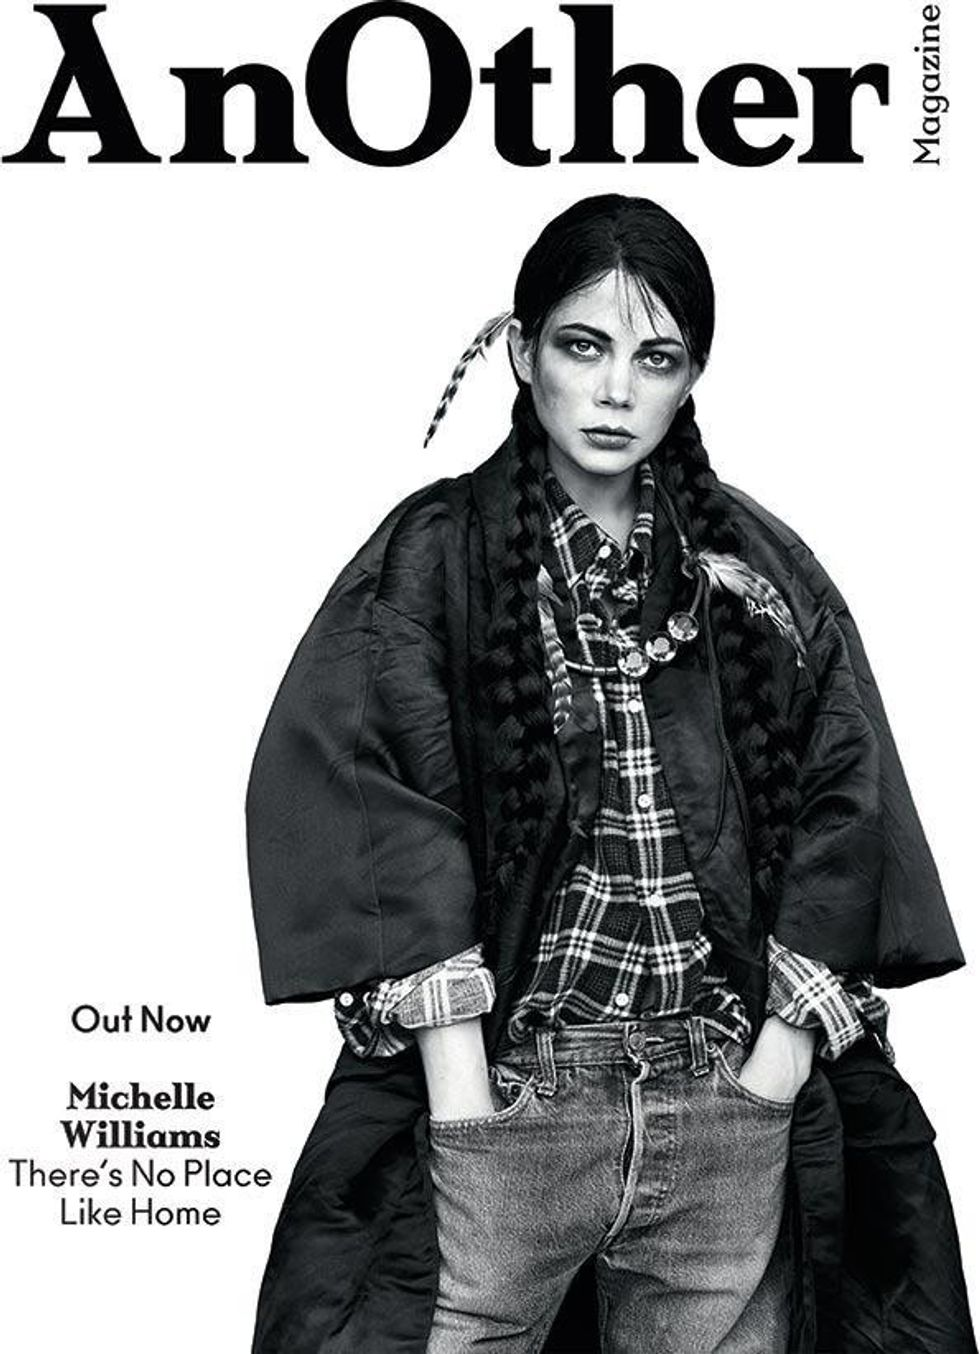 Thoughts on Michelle Williams' Racist Magazine Cover